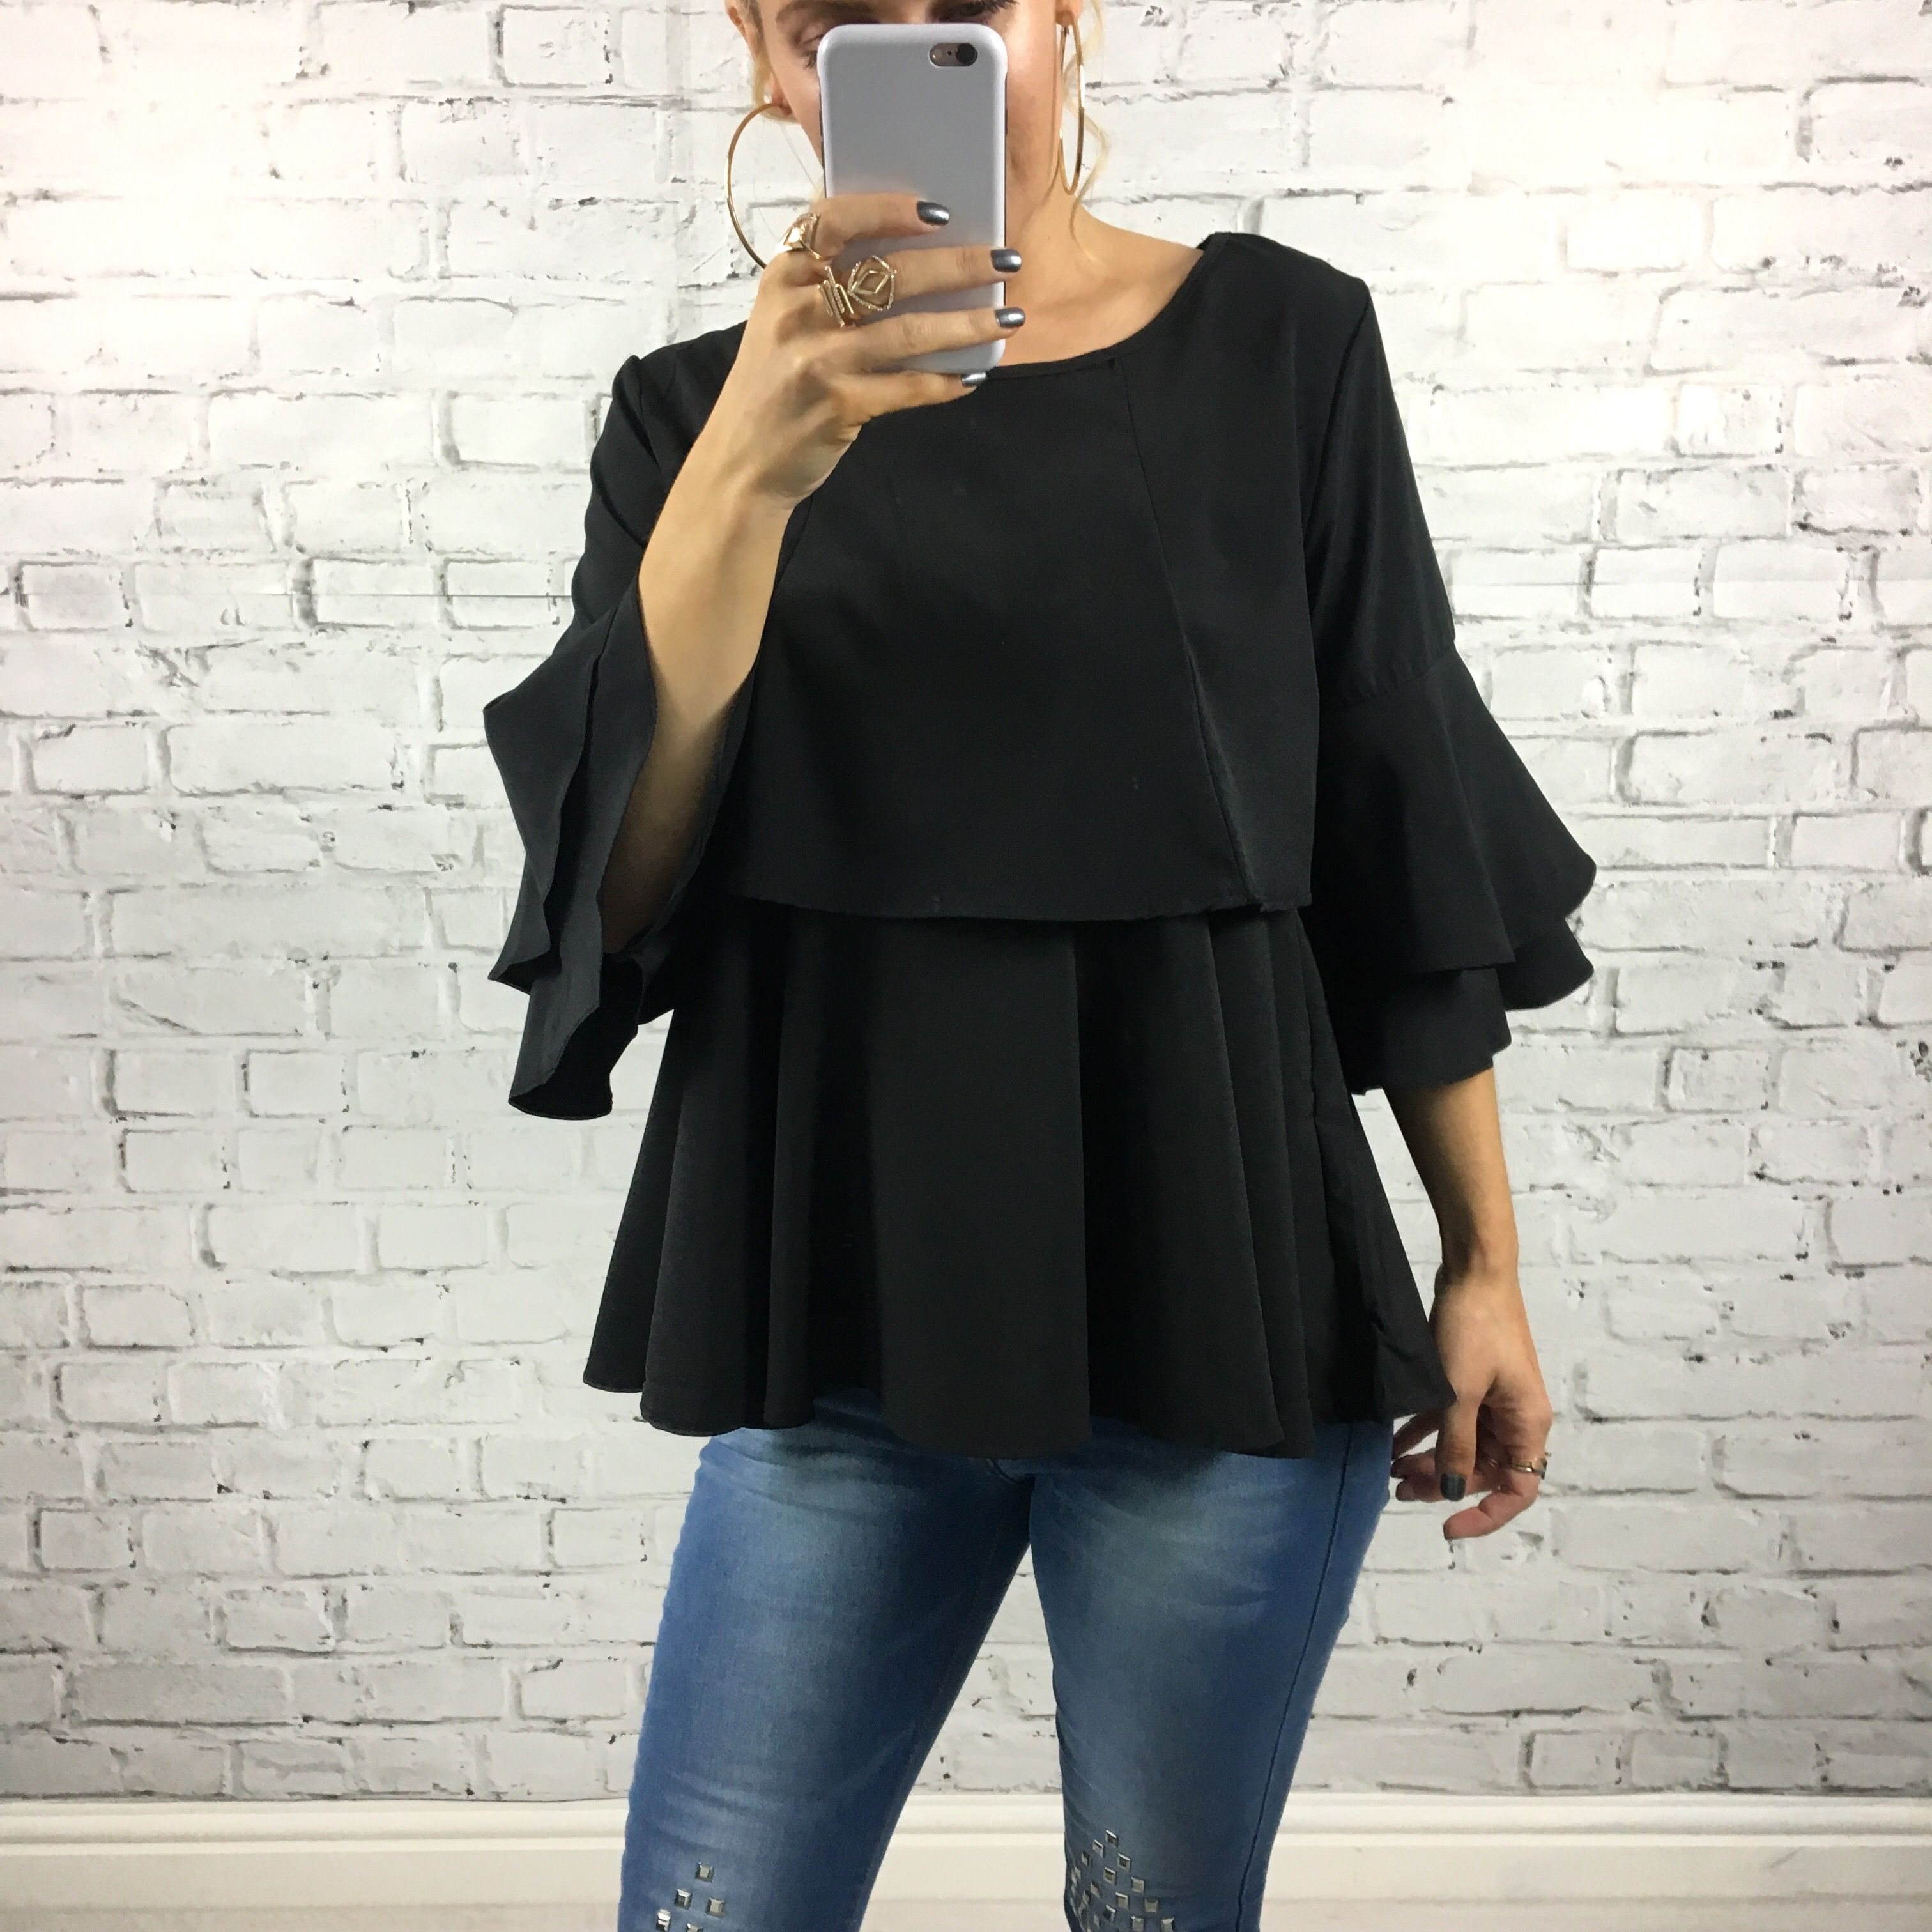 Our Two Tier Melina Top Is Pretty As They Come £26.95